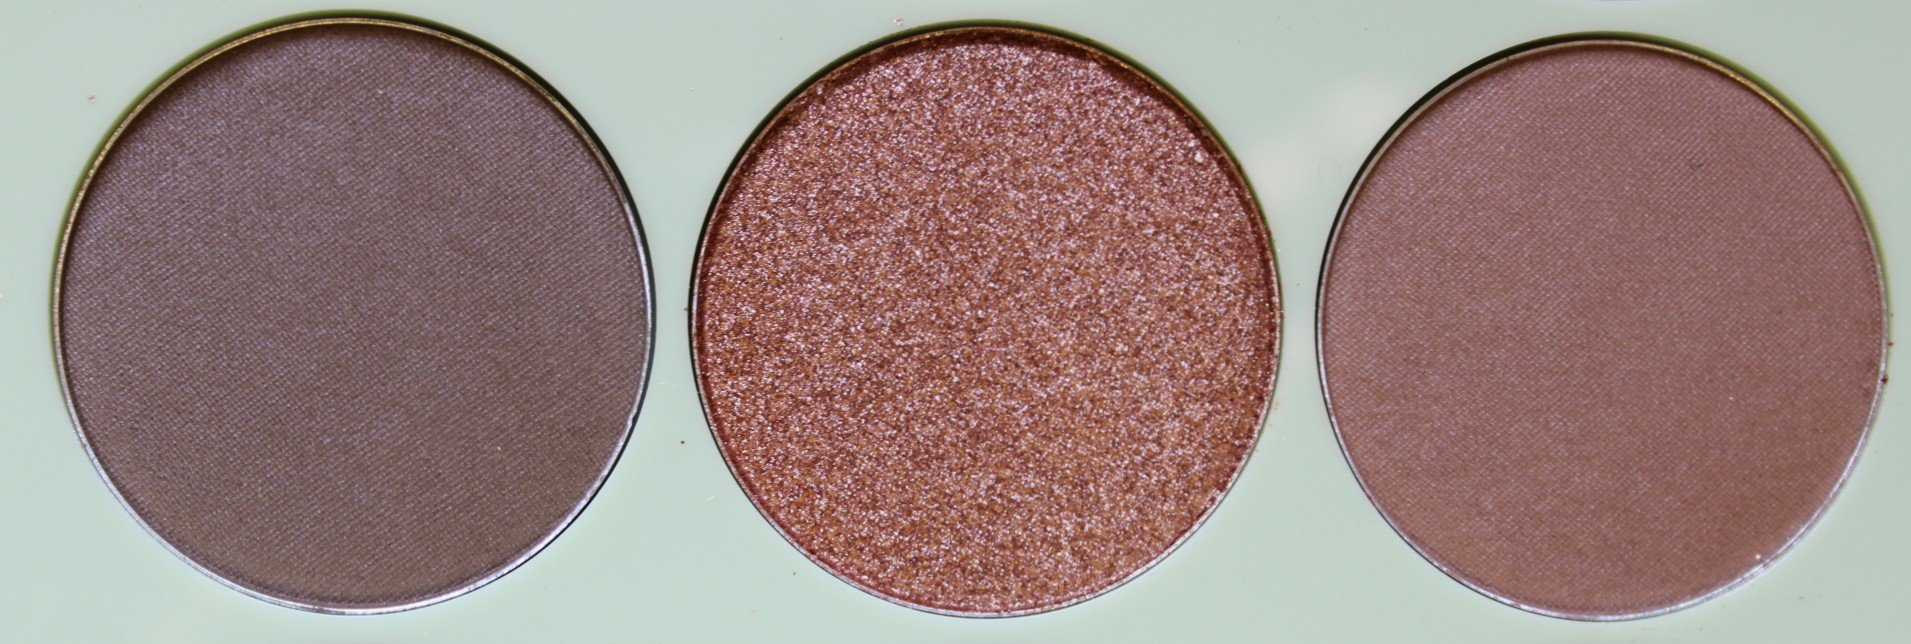 Third Row with shades Deep Taupe and Foiled Bronze and Soft Brown